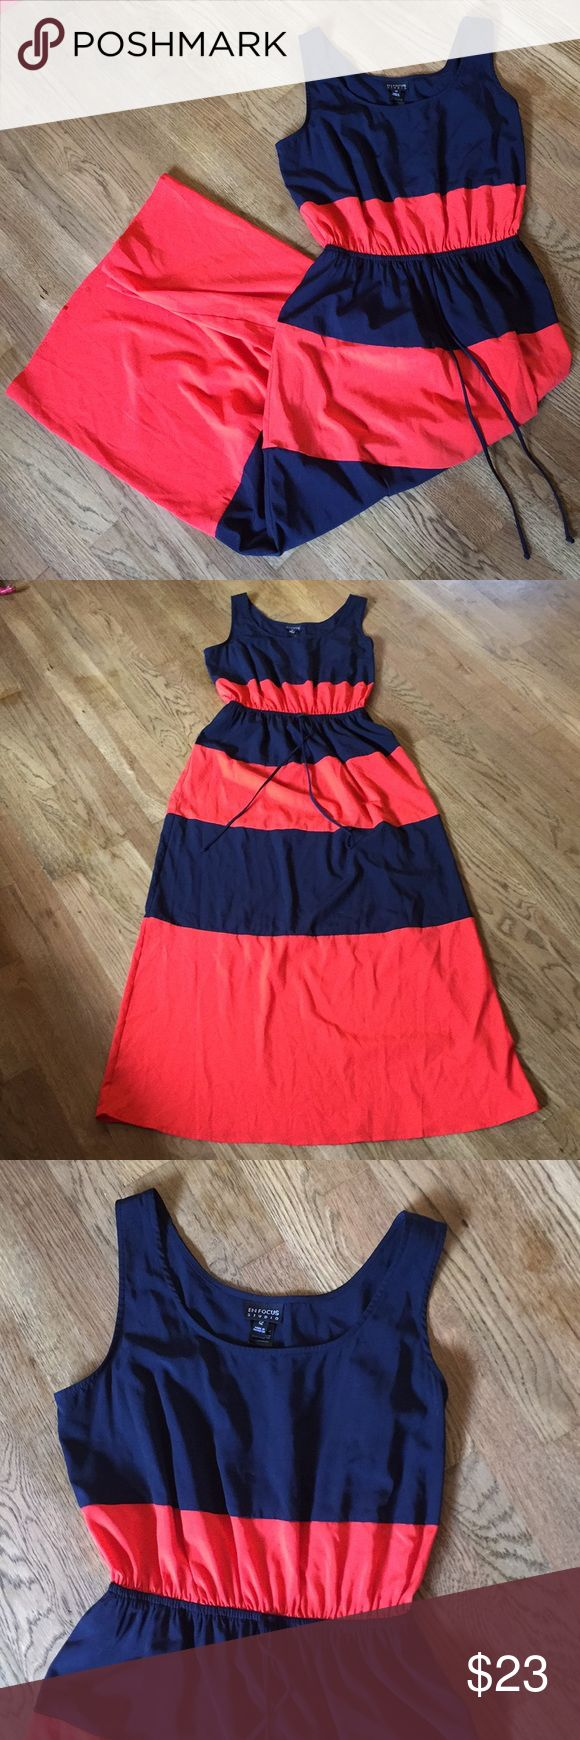 Stripped maxi dress Beautiful striped maxi dress. Gathered waists for a flattering fit. Navy blue and bright red almost orange. en focus Dresses Maxi